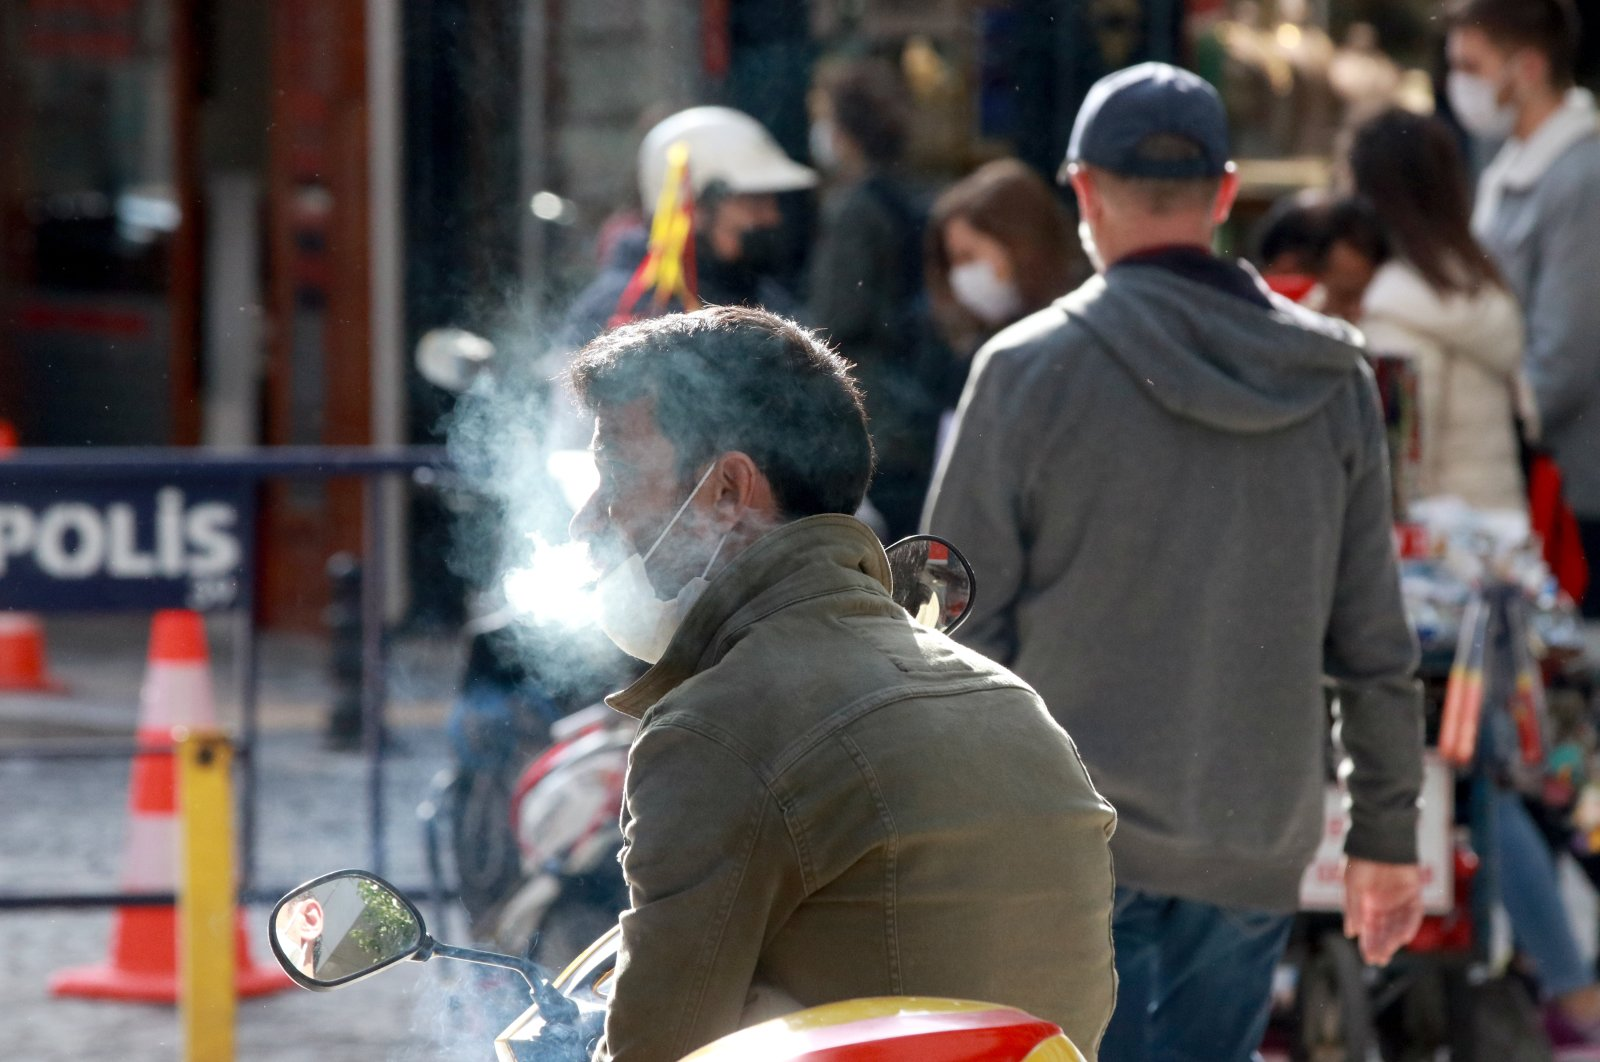 A man who lowered his mask smokes in Kırklareli, northwestern Turkey, Nov. 13, 2020. (AA Photo)